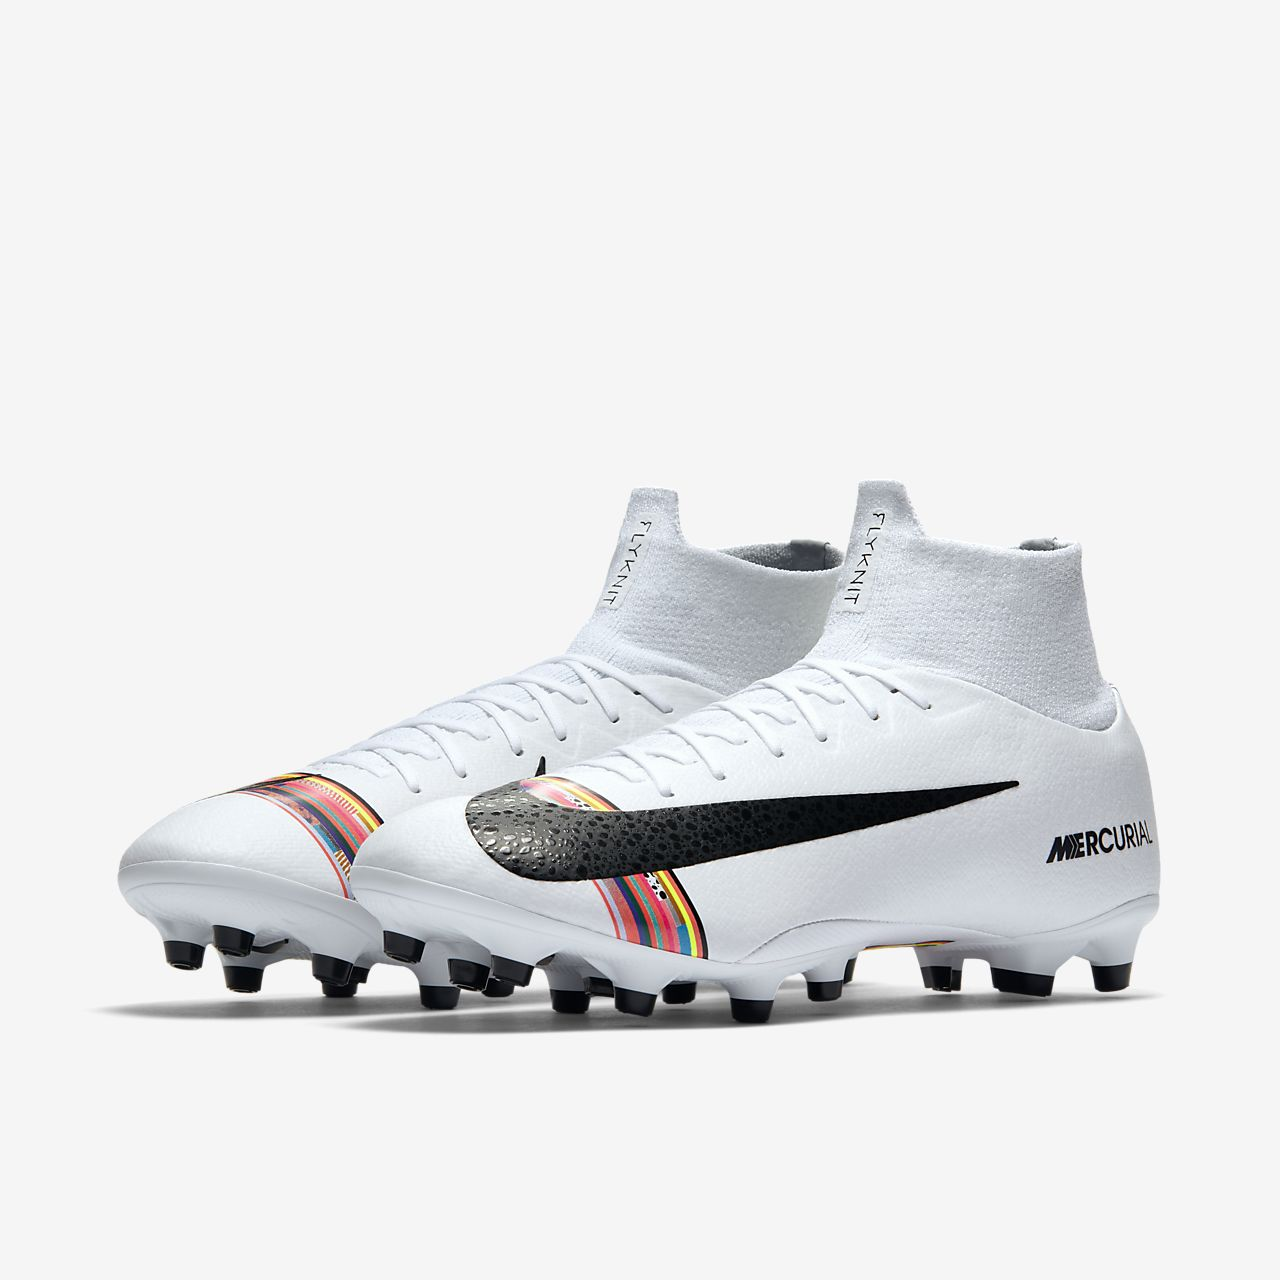 111efd5a Nike Superfly 6 Pro AG-Pro Artificial-Grass Pro Football Boot. Nike ...